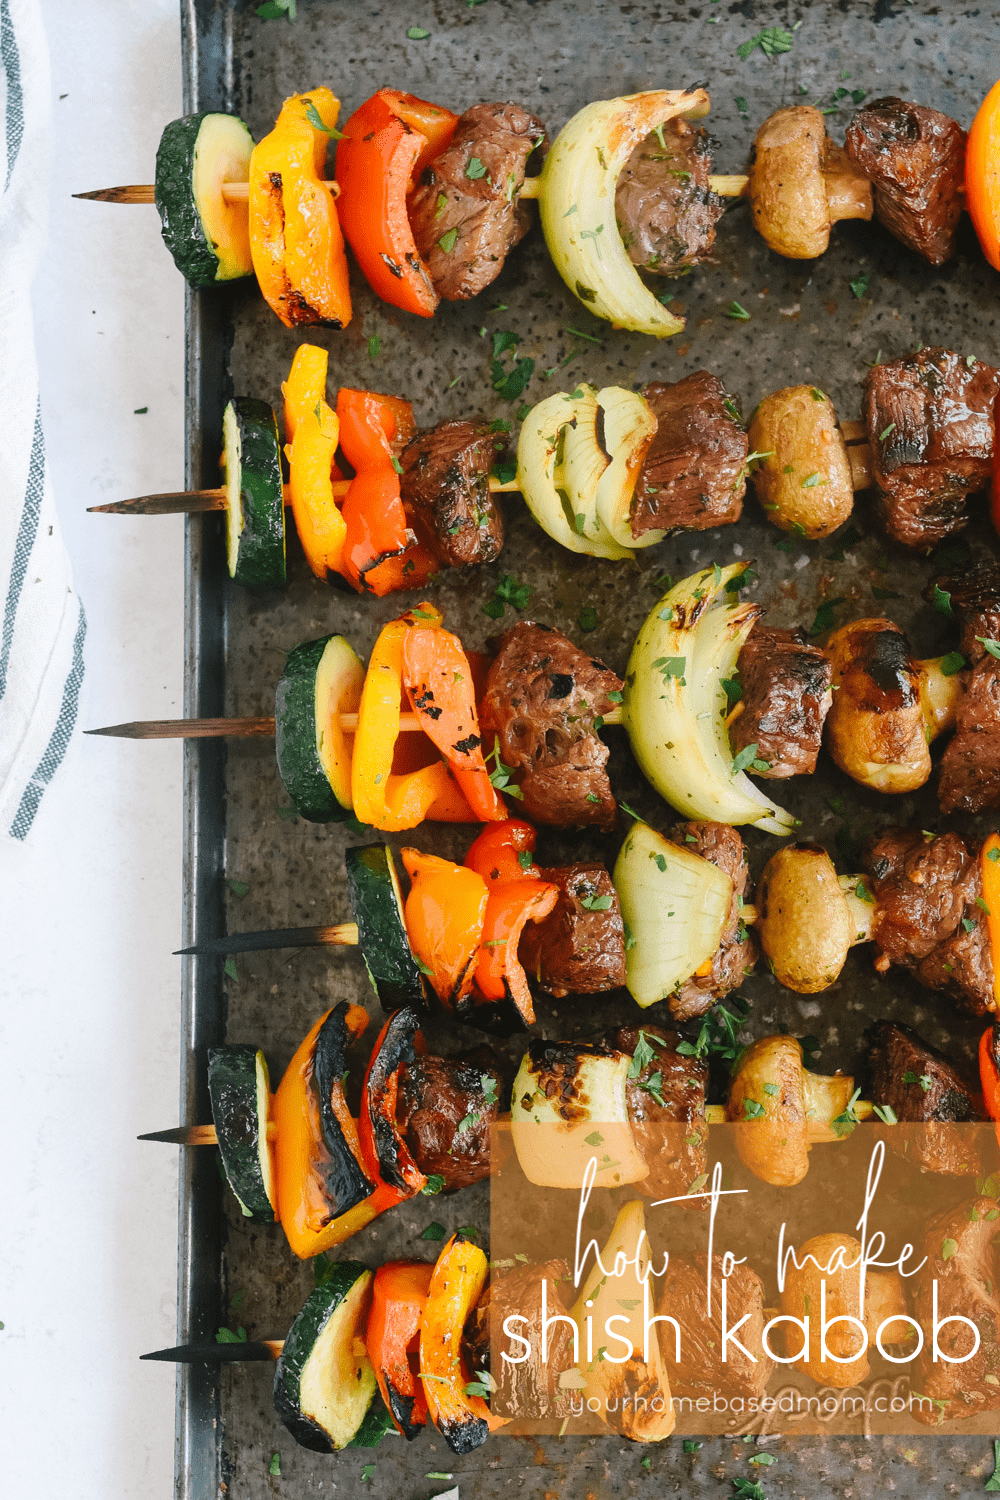 shish kabob on a baking sheet